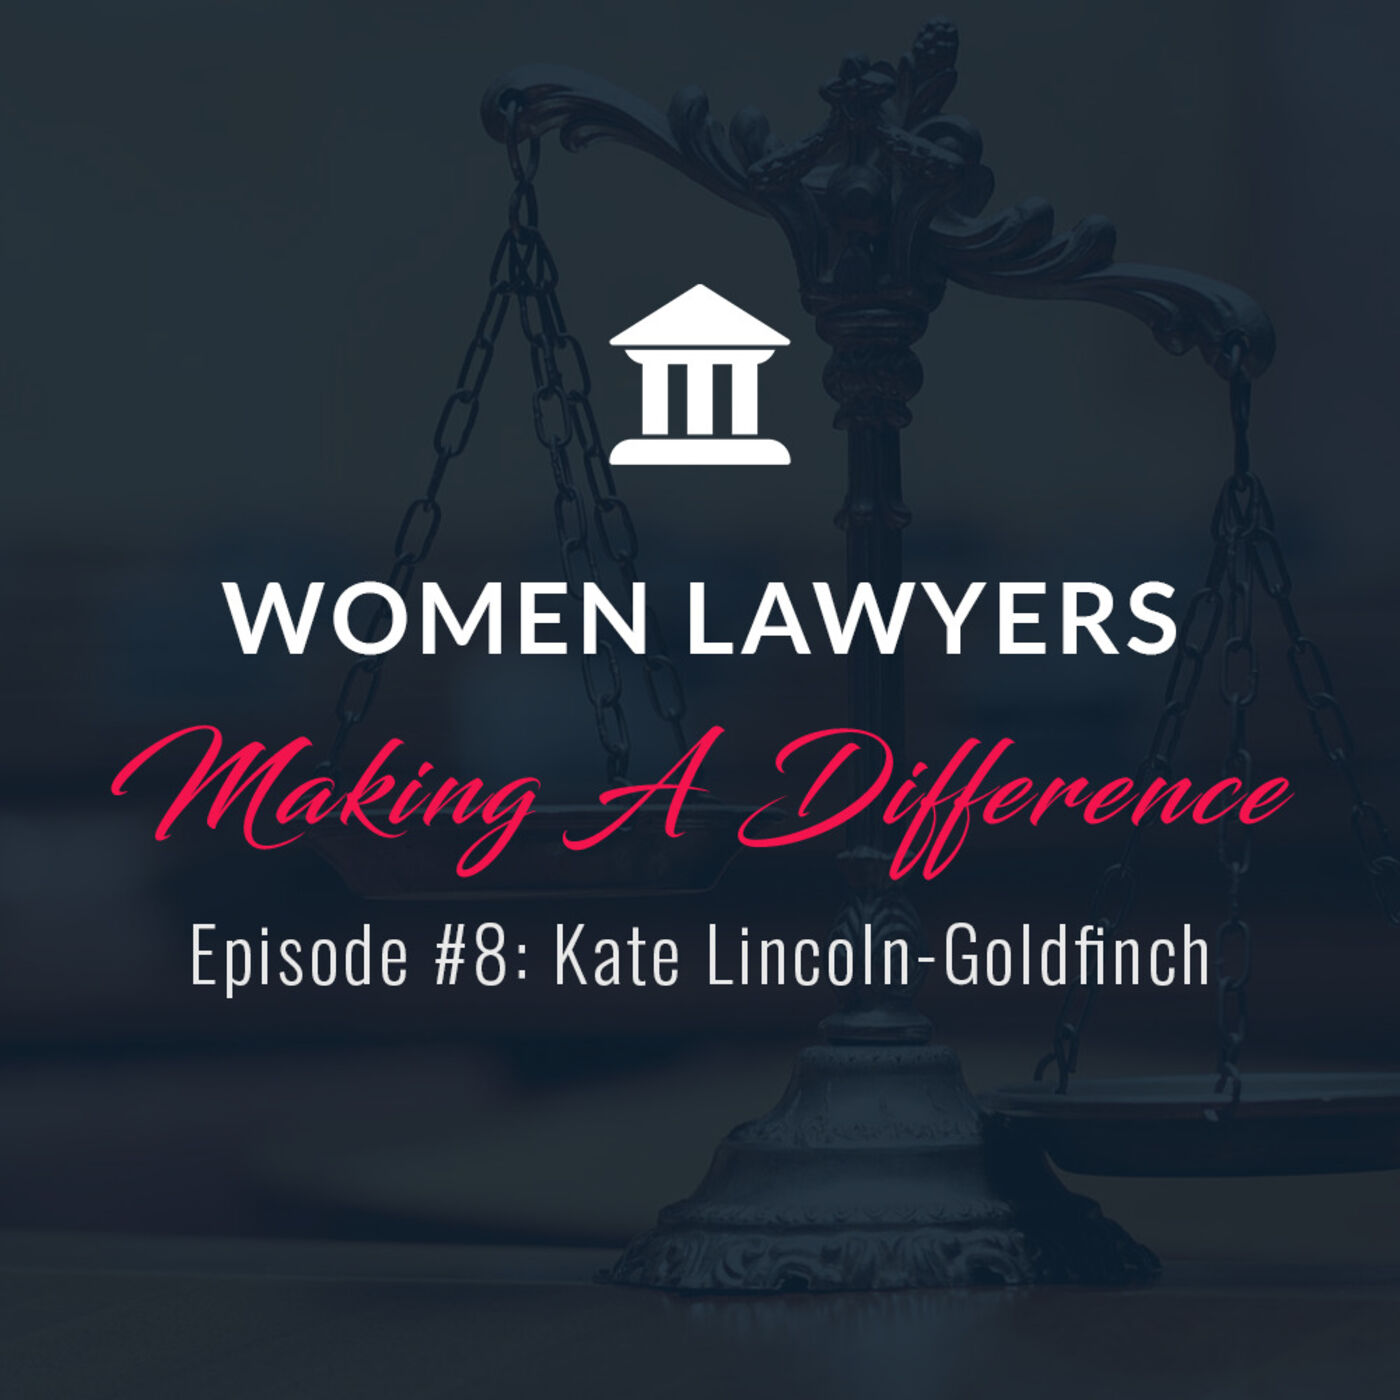 Women Lawyers Making A Difference: Interview with Kate Lincoln-Goldfinch